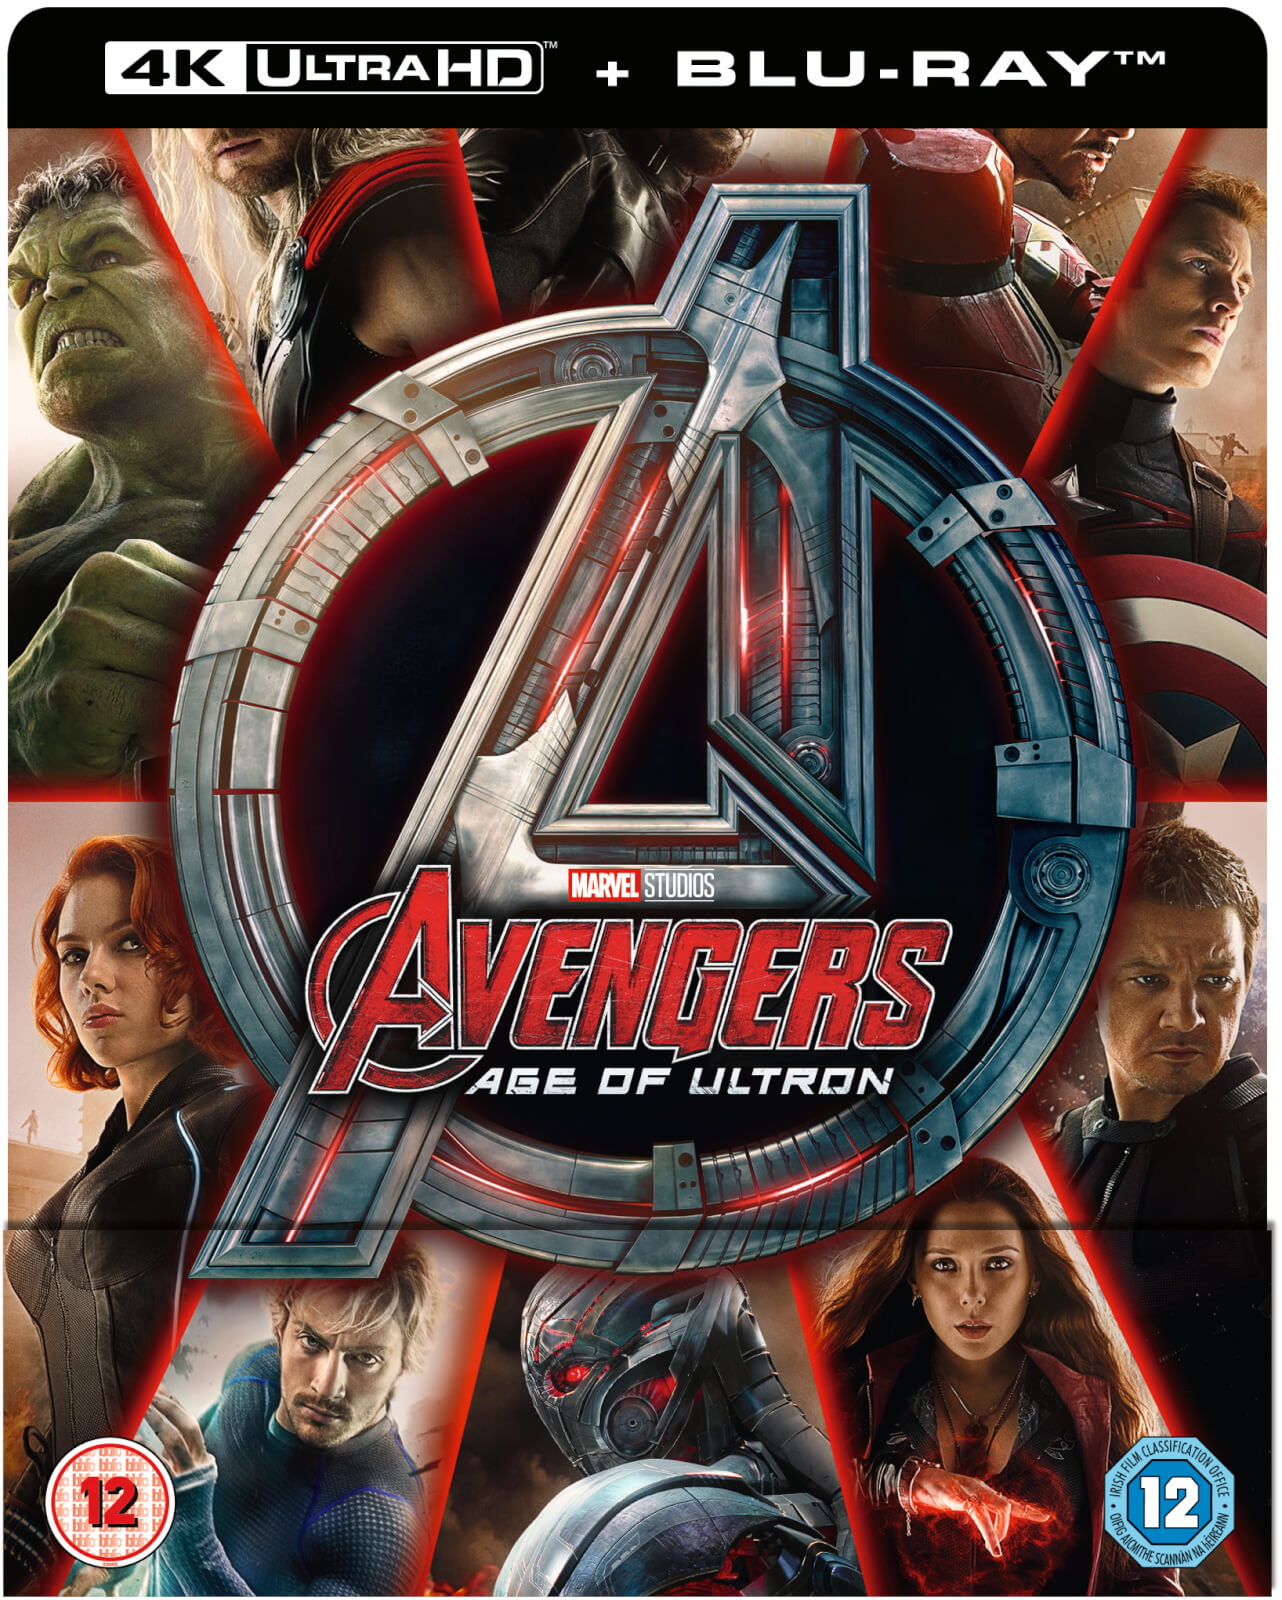 avengers age of ultron english subtitles file